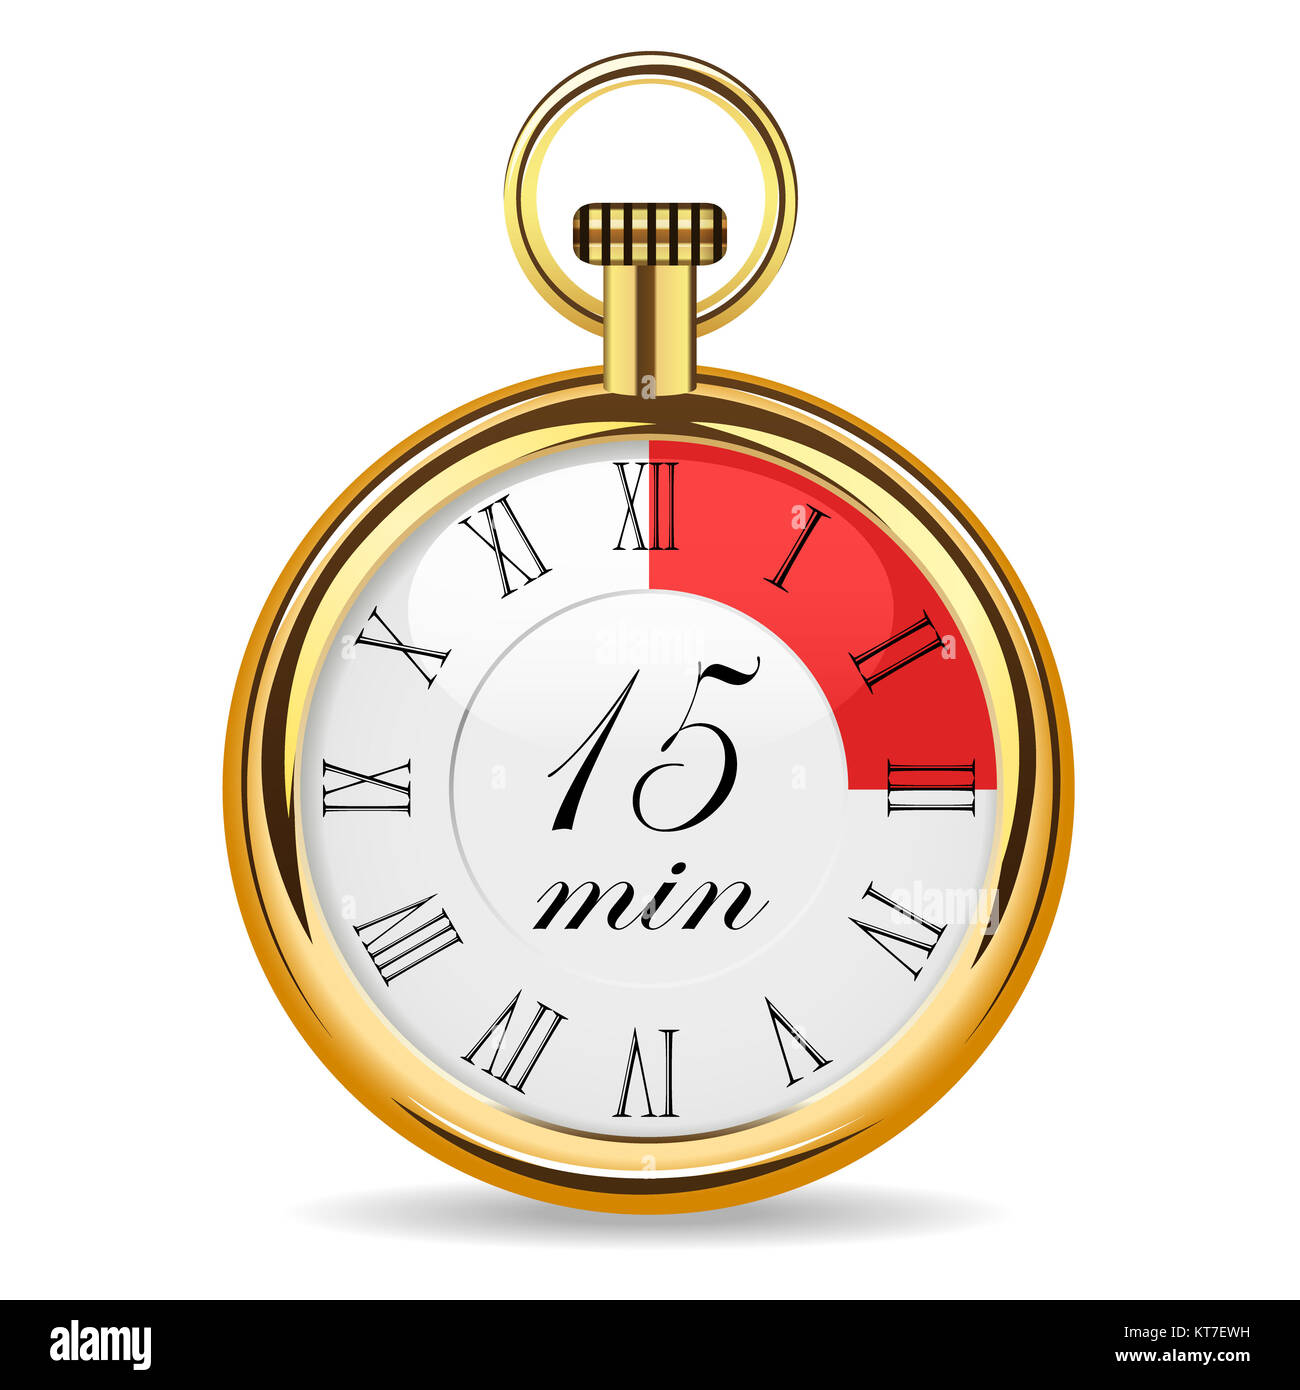 mechanical watch timer 15 minutes stock photo 169810413 alamy